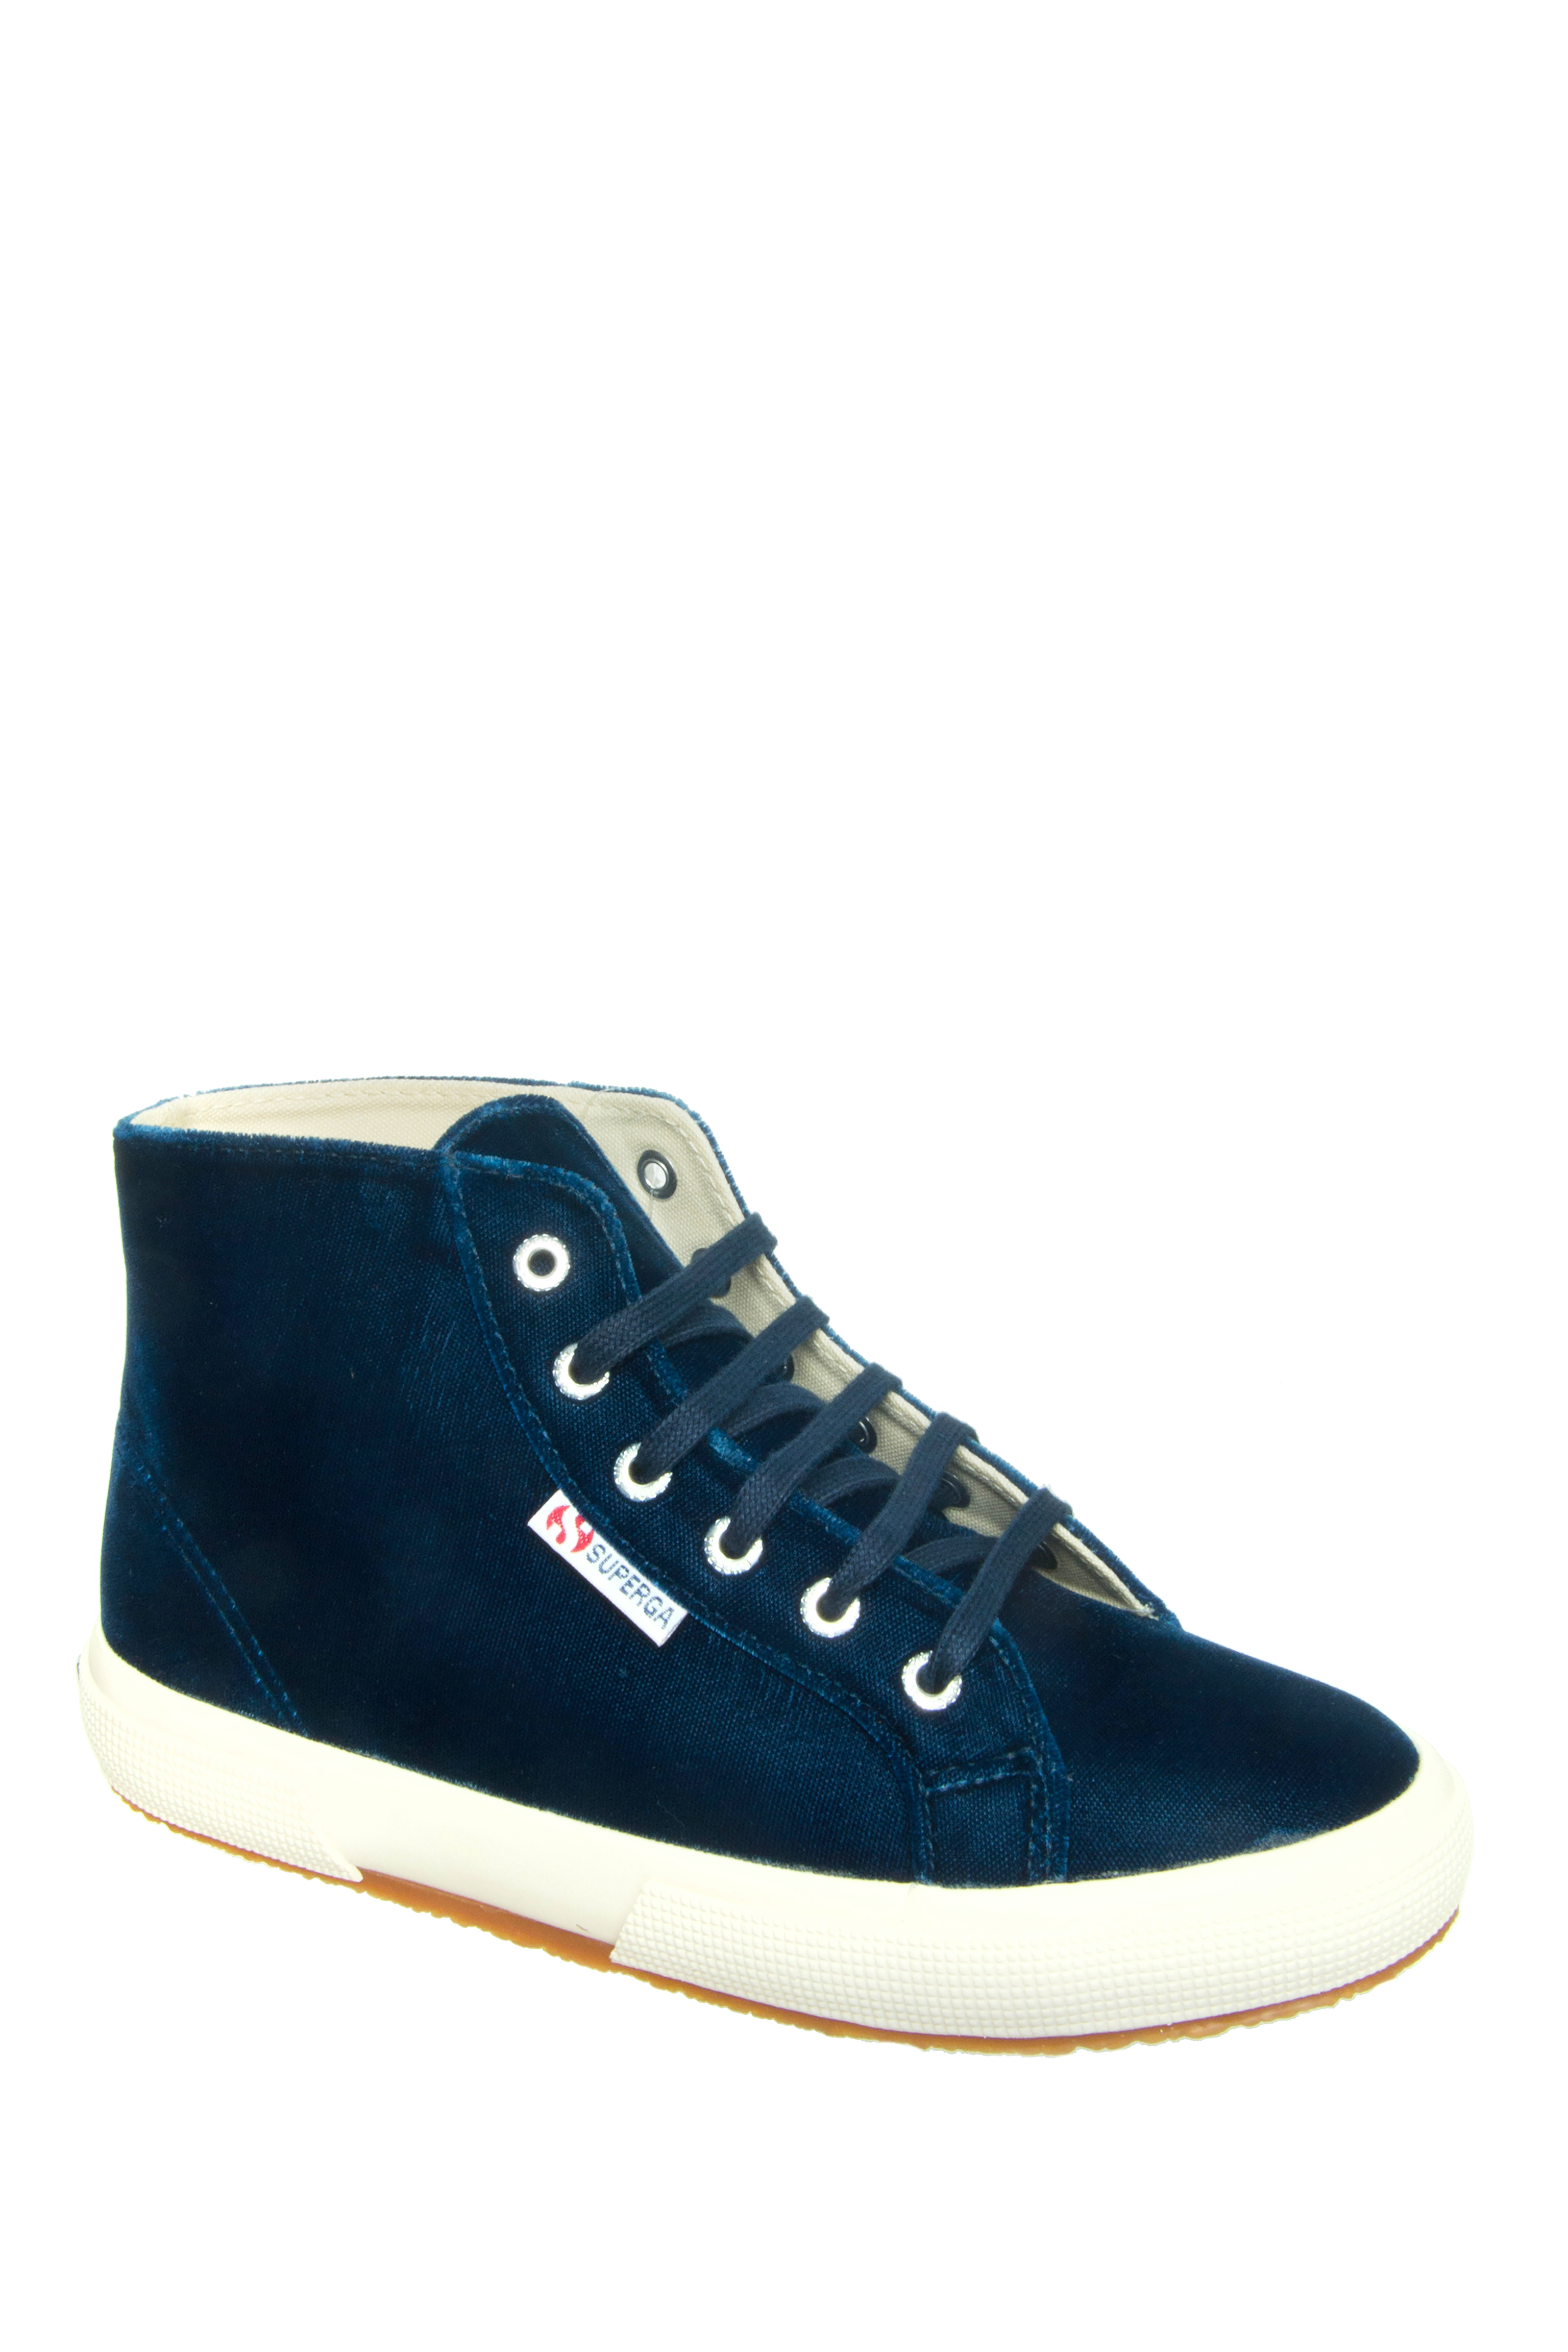 Superga Velvet Hi Top Sneakers - Blue